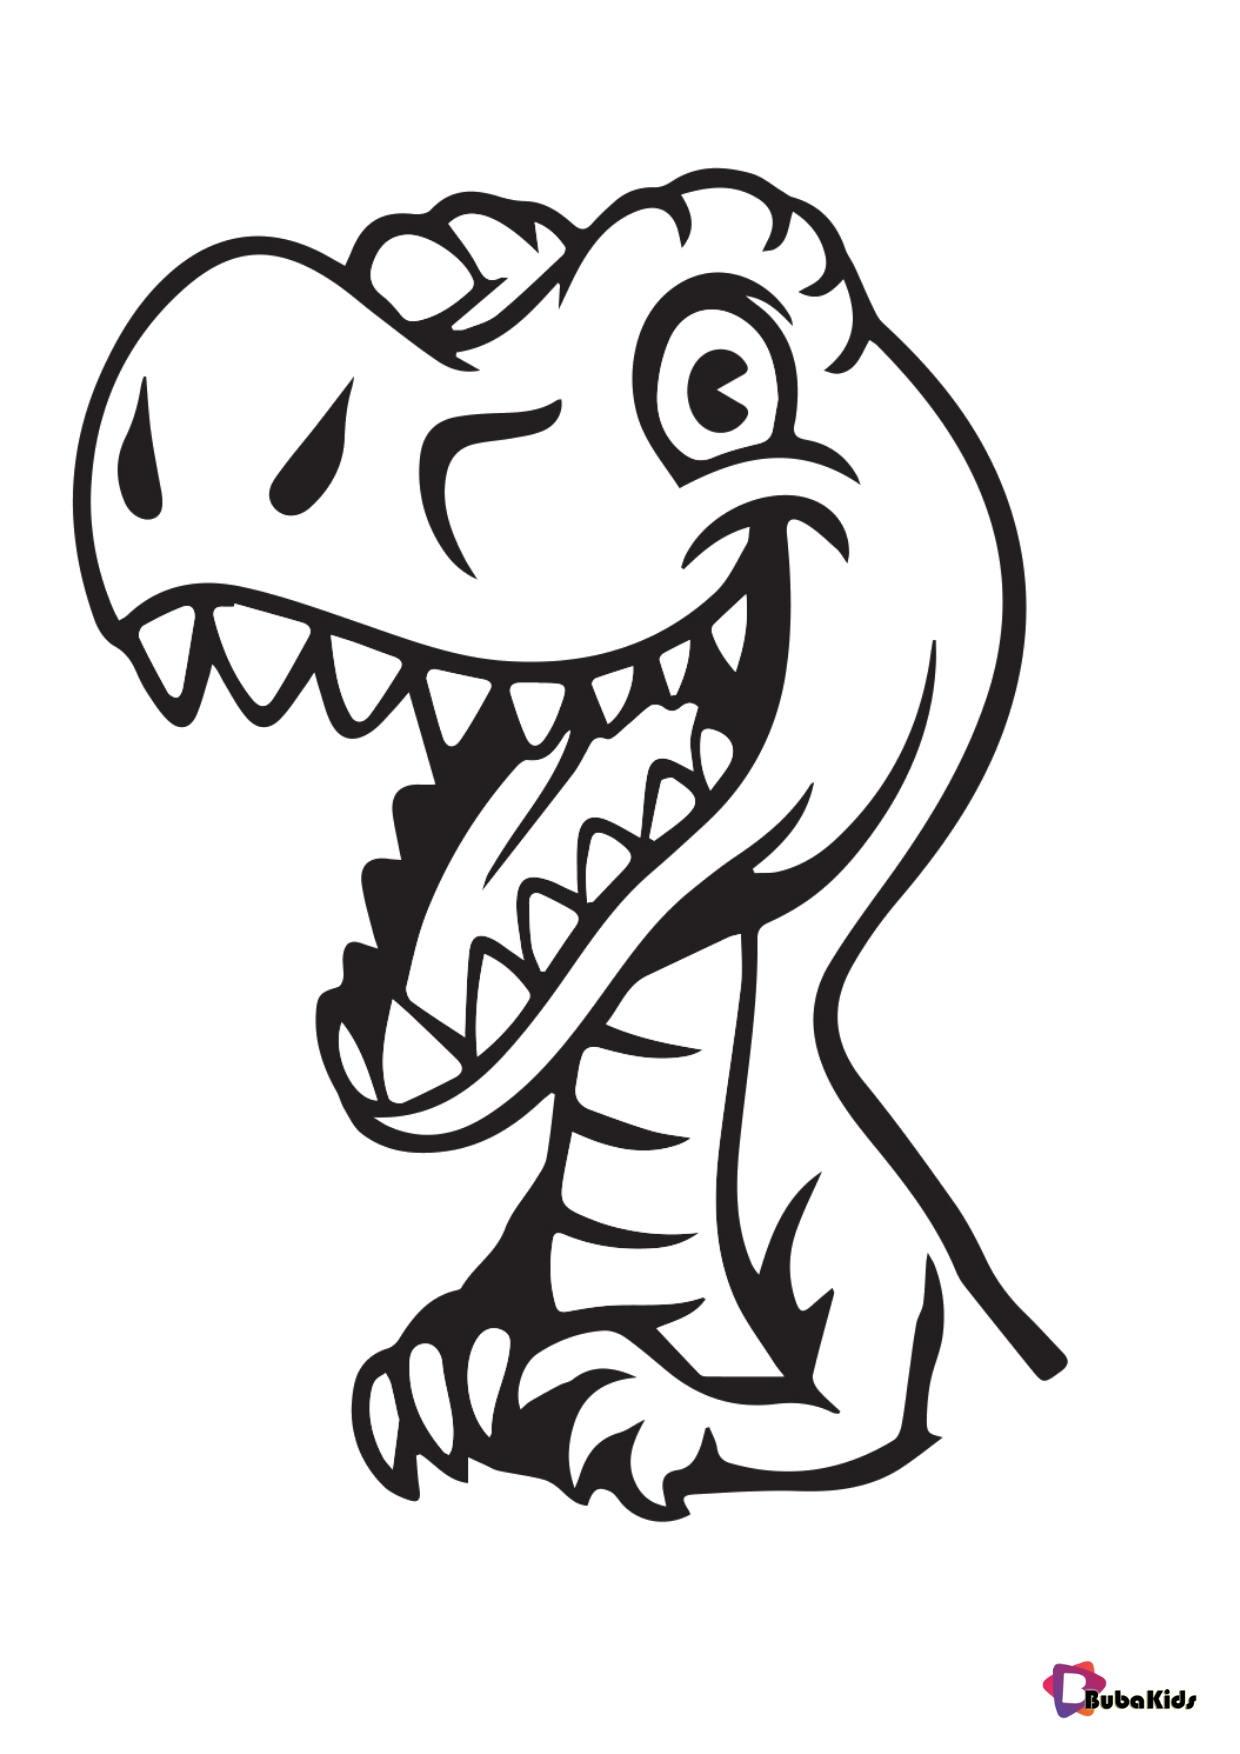 Smiling baby dinosaur coloring page for kids Wallpaper